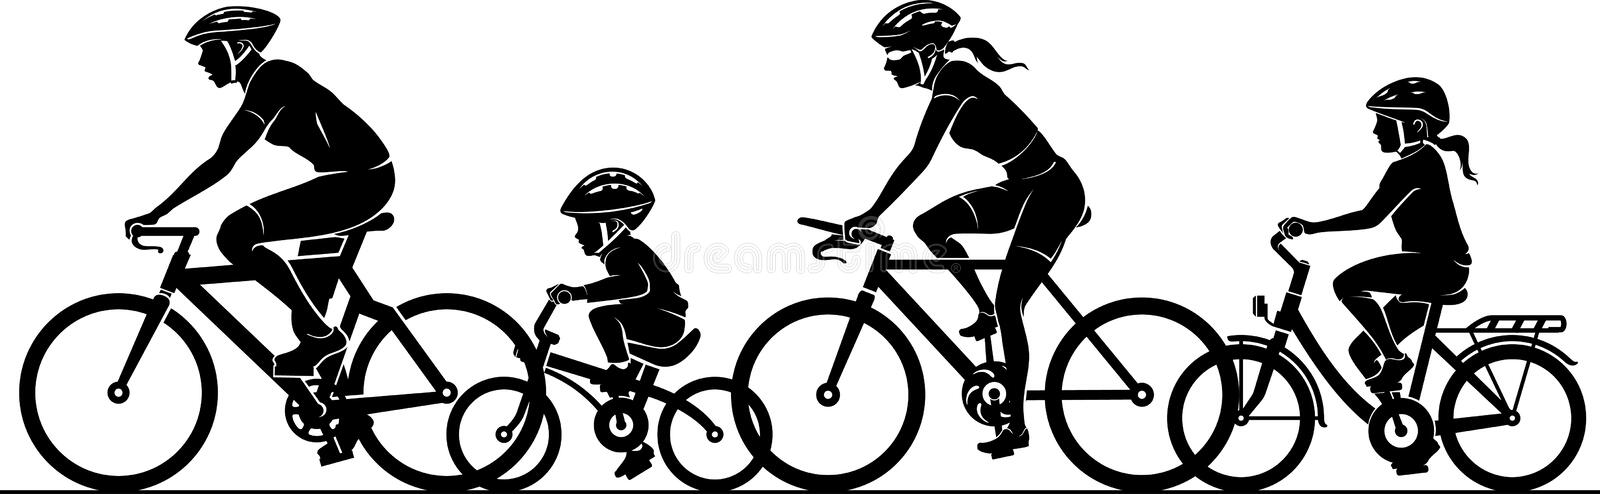 Family Fun Riding Bicycle vector illustration